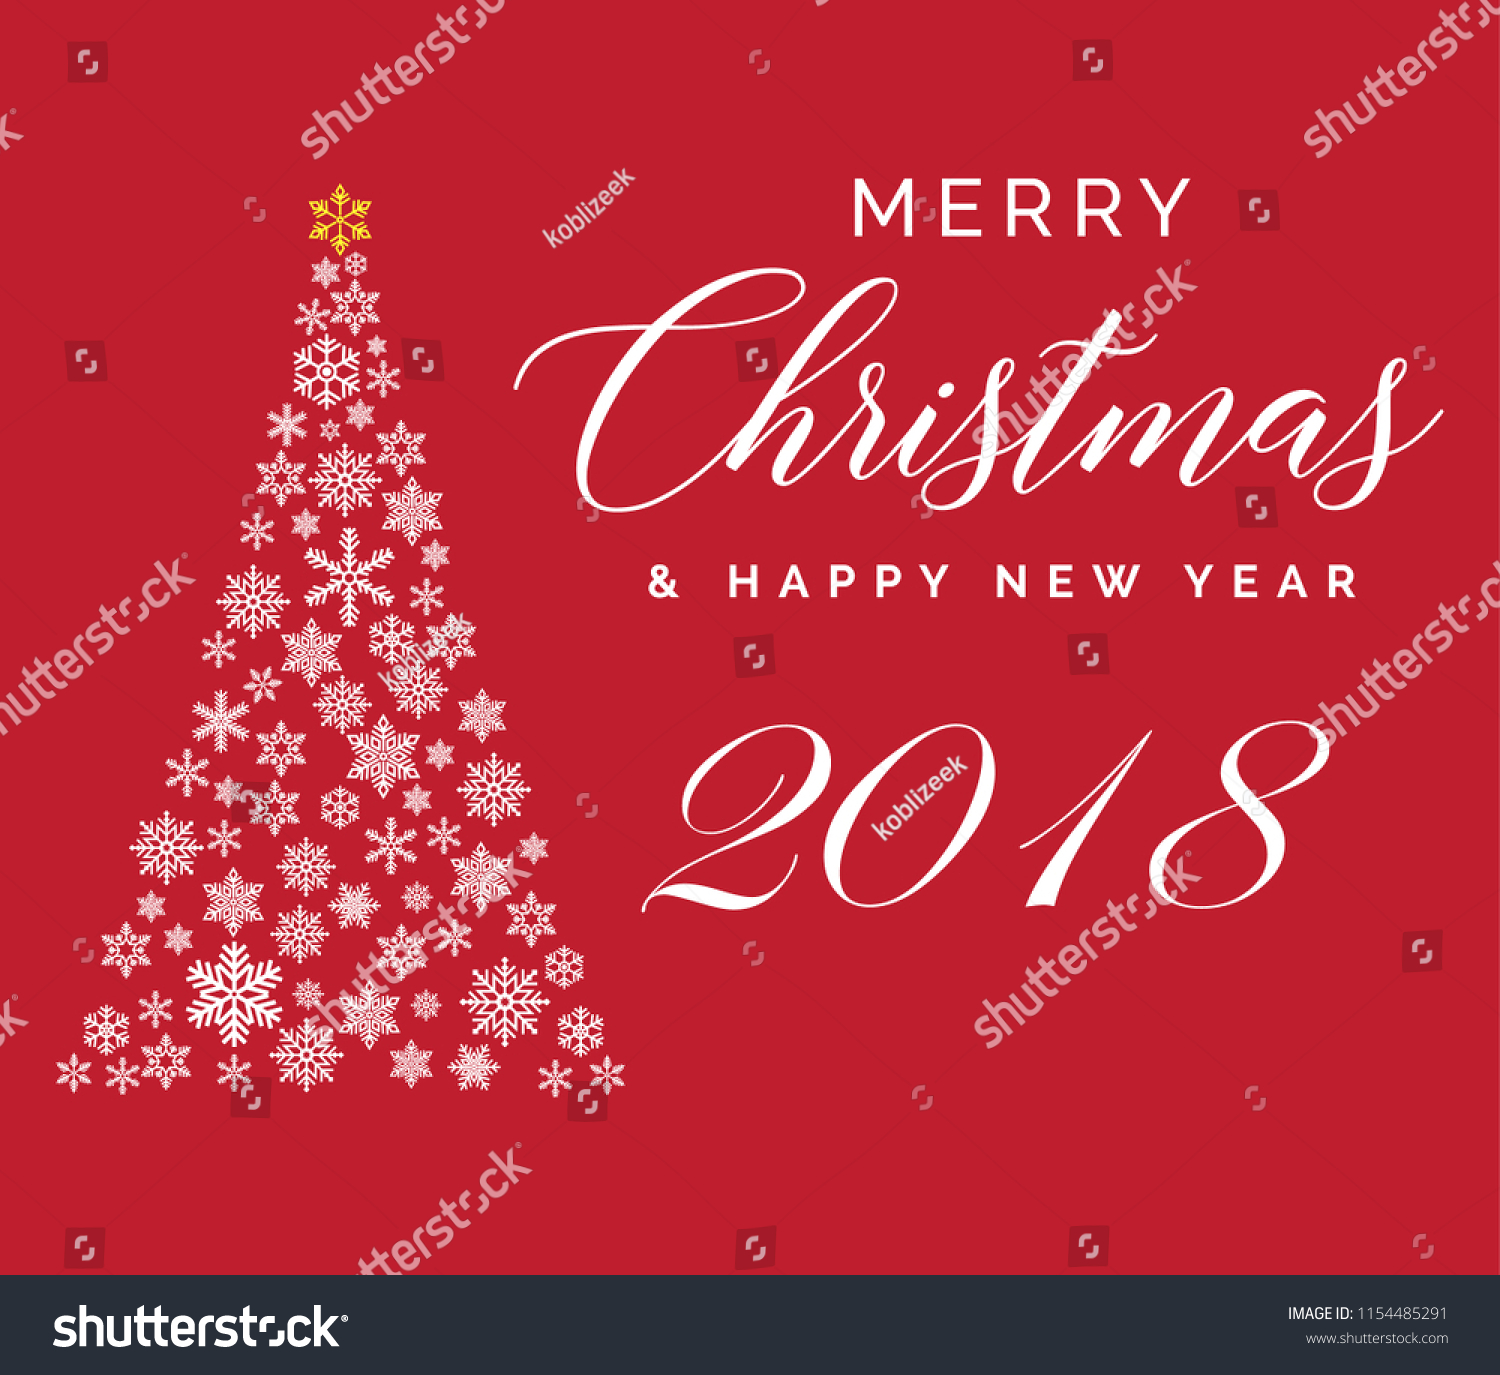 merry christmas and happy new year 2018 lettering template greeting card or invitation winter